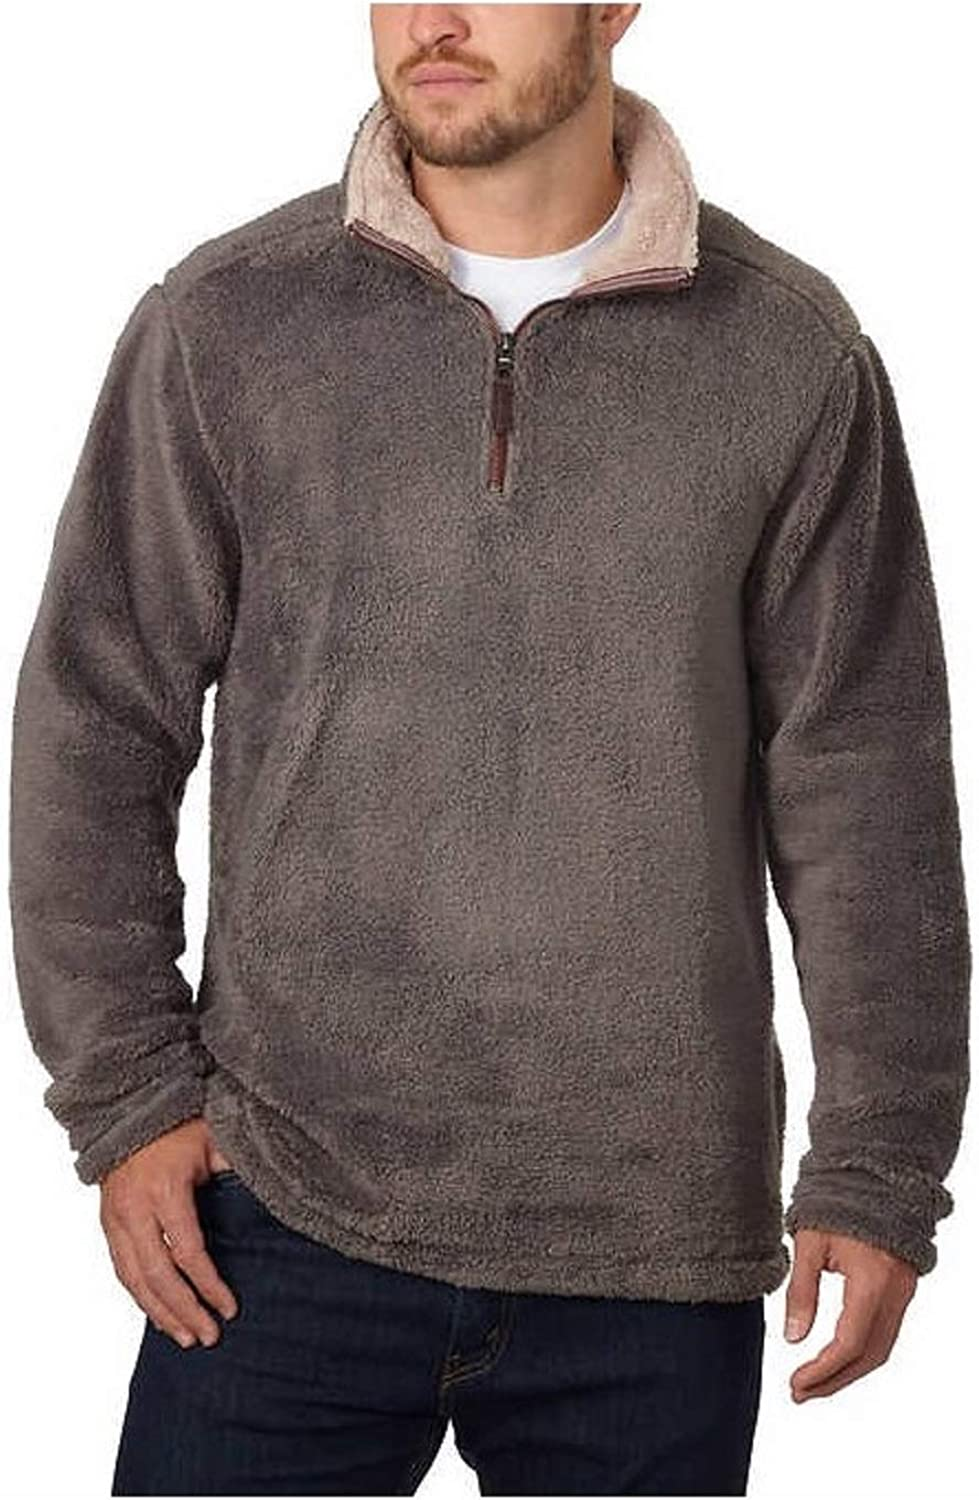 Men's Trinity Plush ¼ Zip W Khaki Large Charcoal Credence Pullover Max 44% OFF